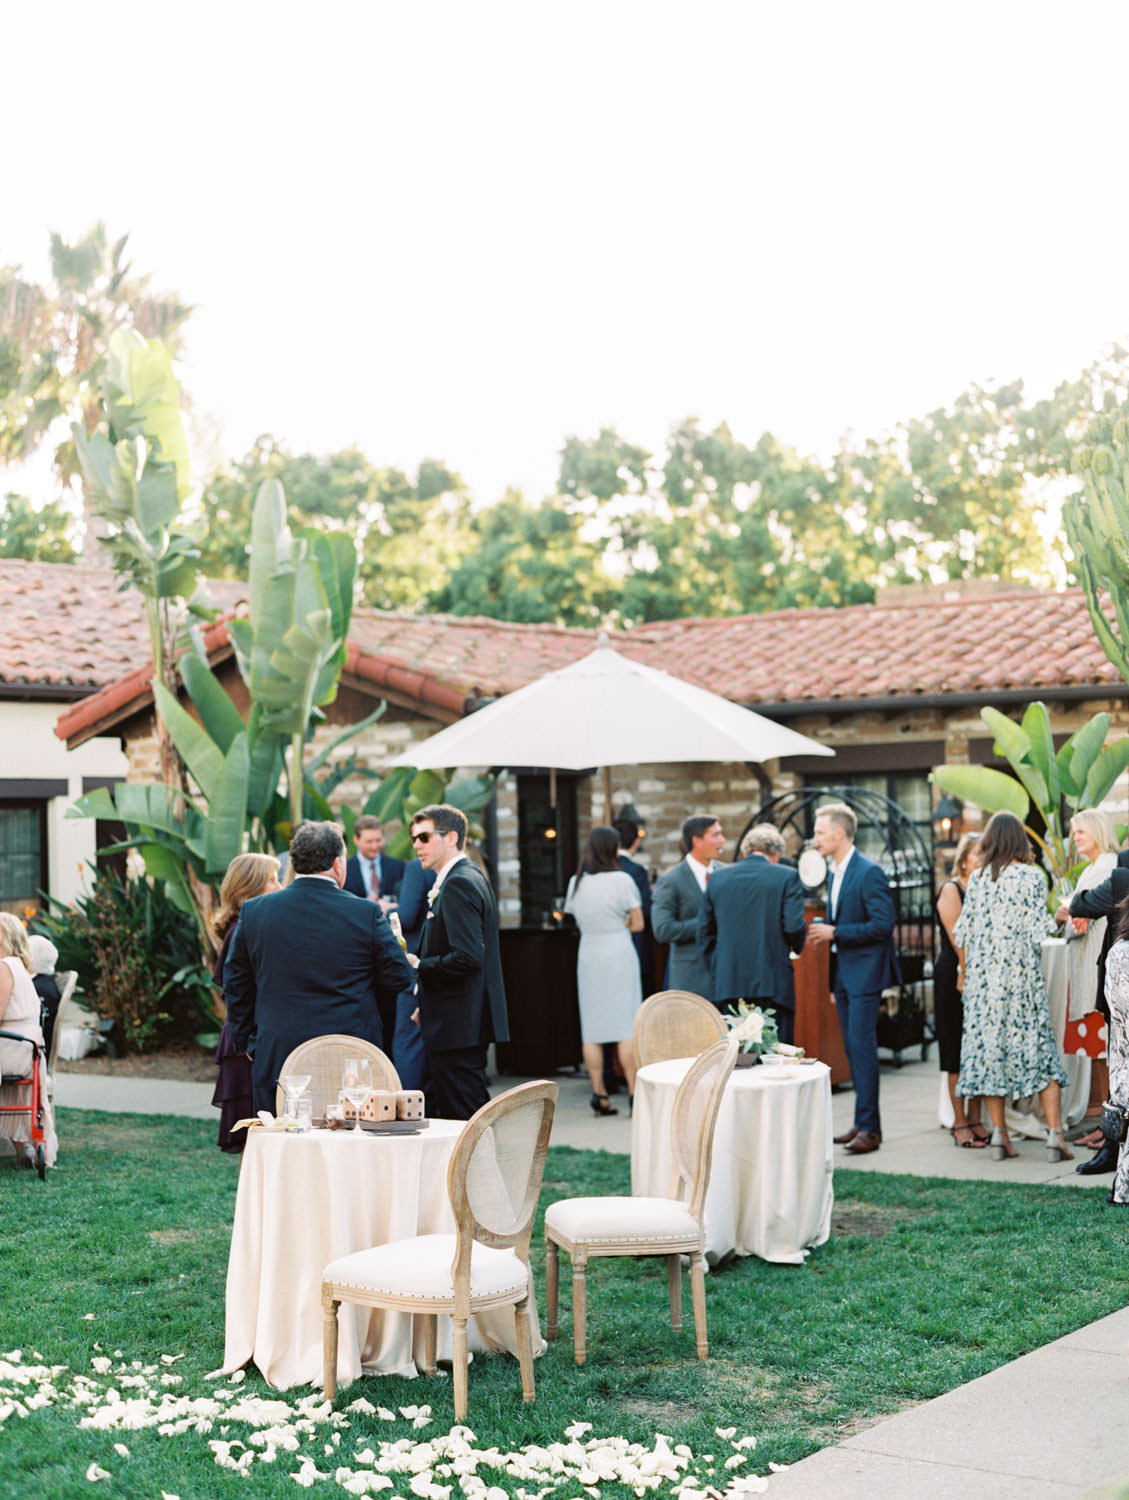 Elegant cocktail hour on a croquet lawn with cane back Oak Louis chairs and tables draped in ivory linens. Estancia La Jolla wedding shot on film by Cavin Elizabeth Photography